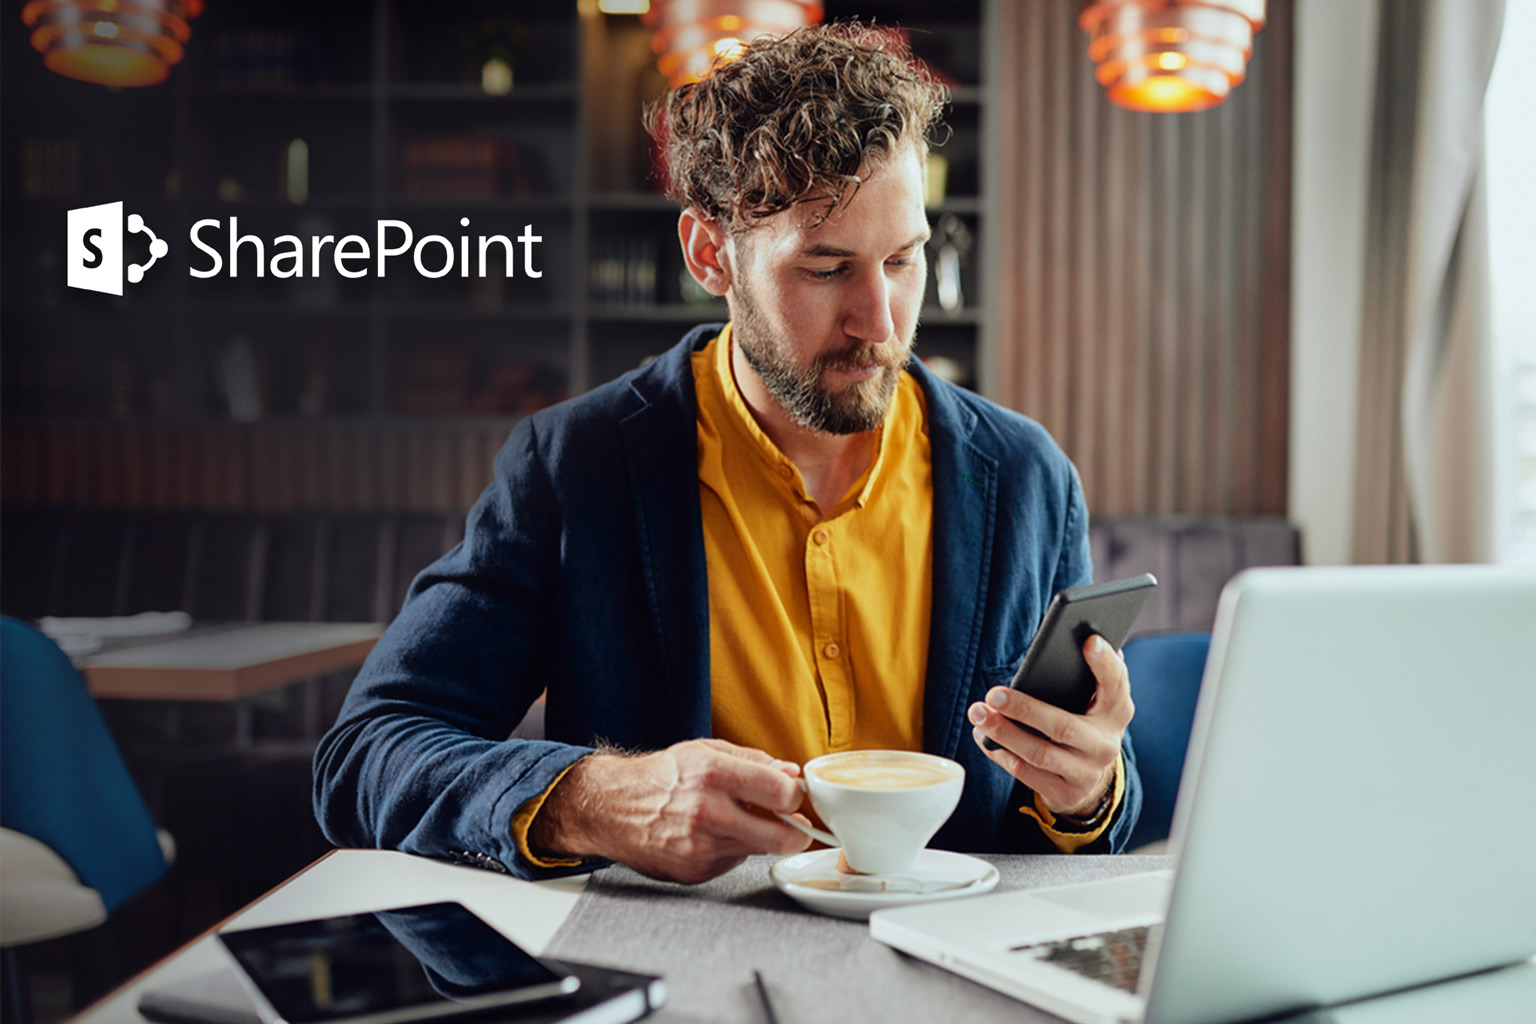 DF_state_Intranet_2020_sharepoint